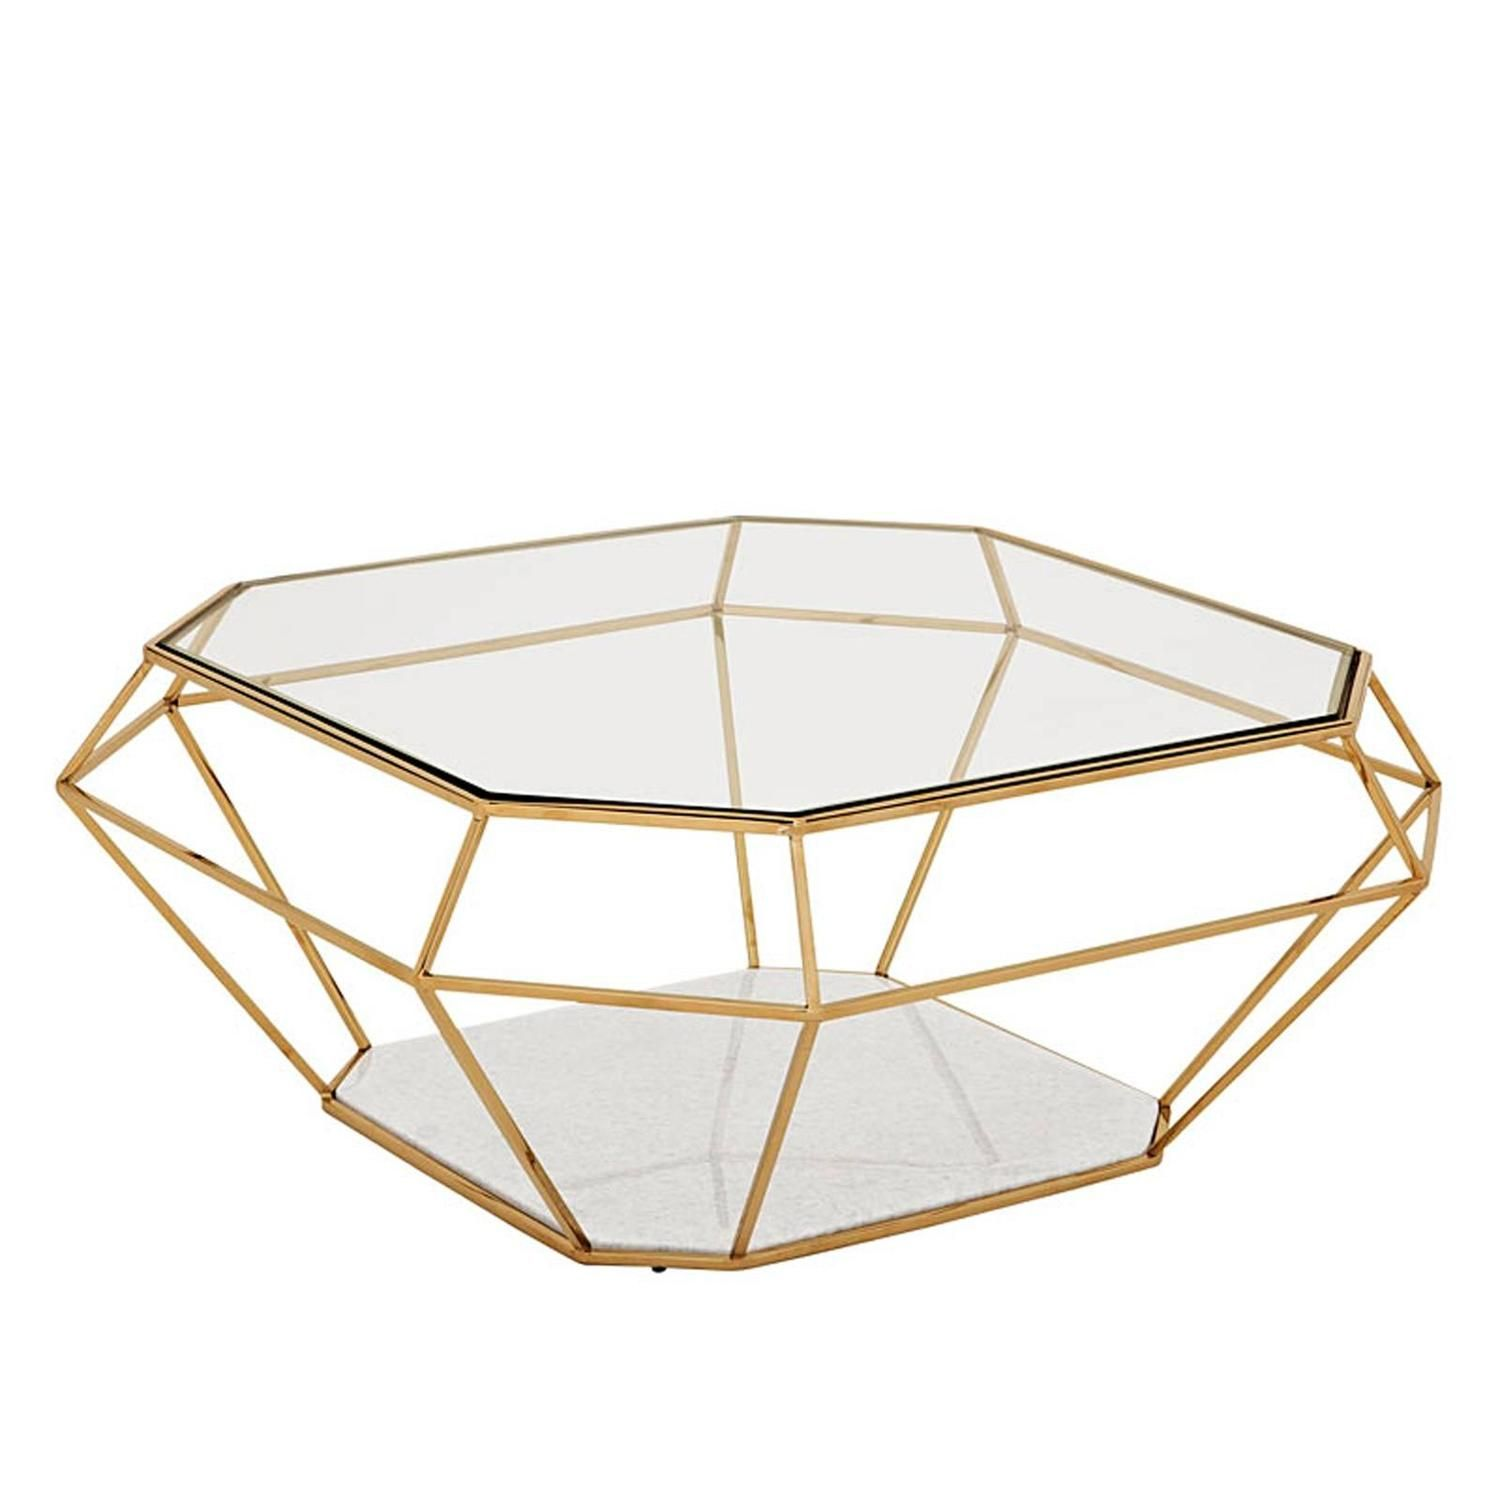 Diamond Coffee Table In Gold Finish With White Marble Gold Coffee Table Glass Coffee Table Art Deco Coffee Table [ 1500 x 1500 Pixel ]